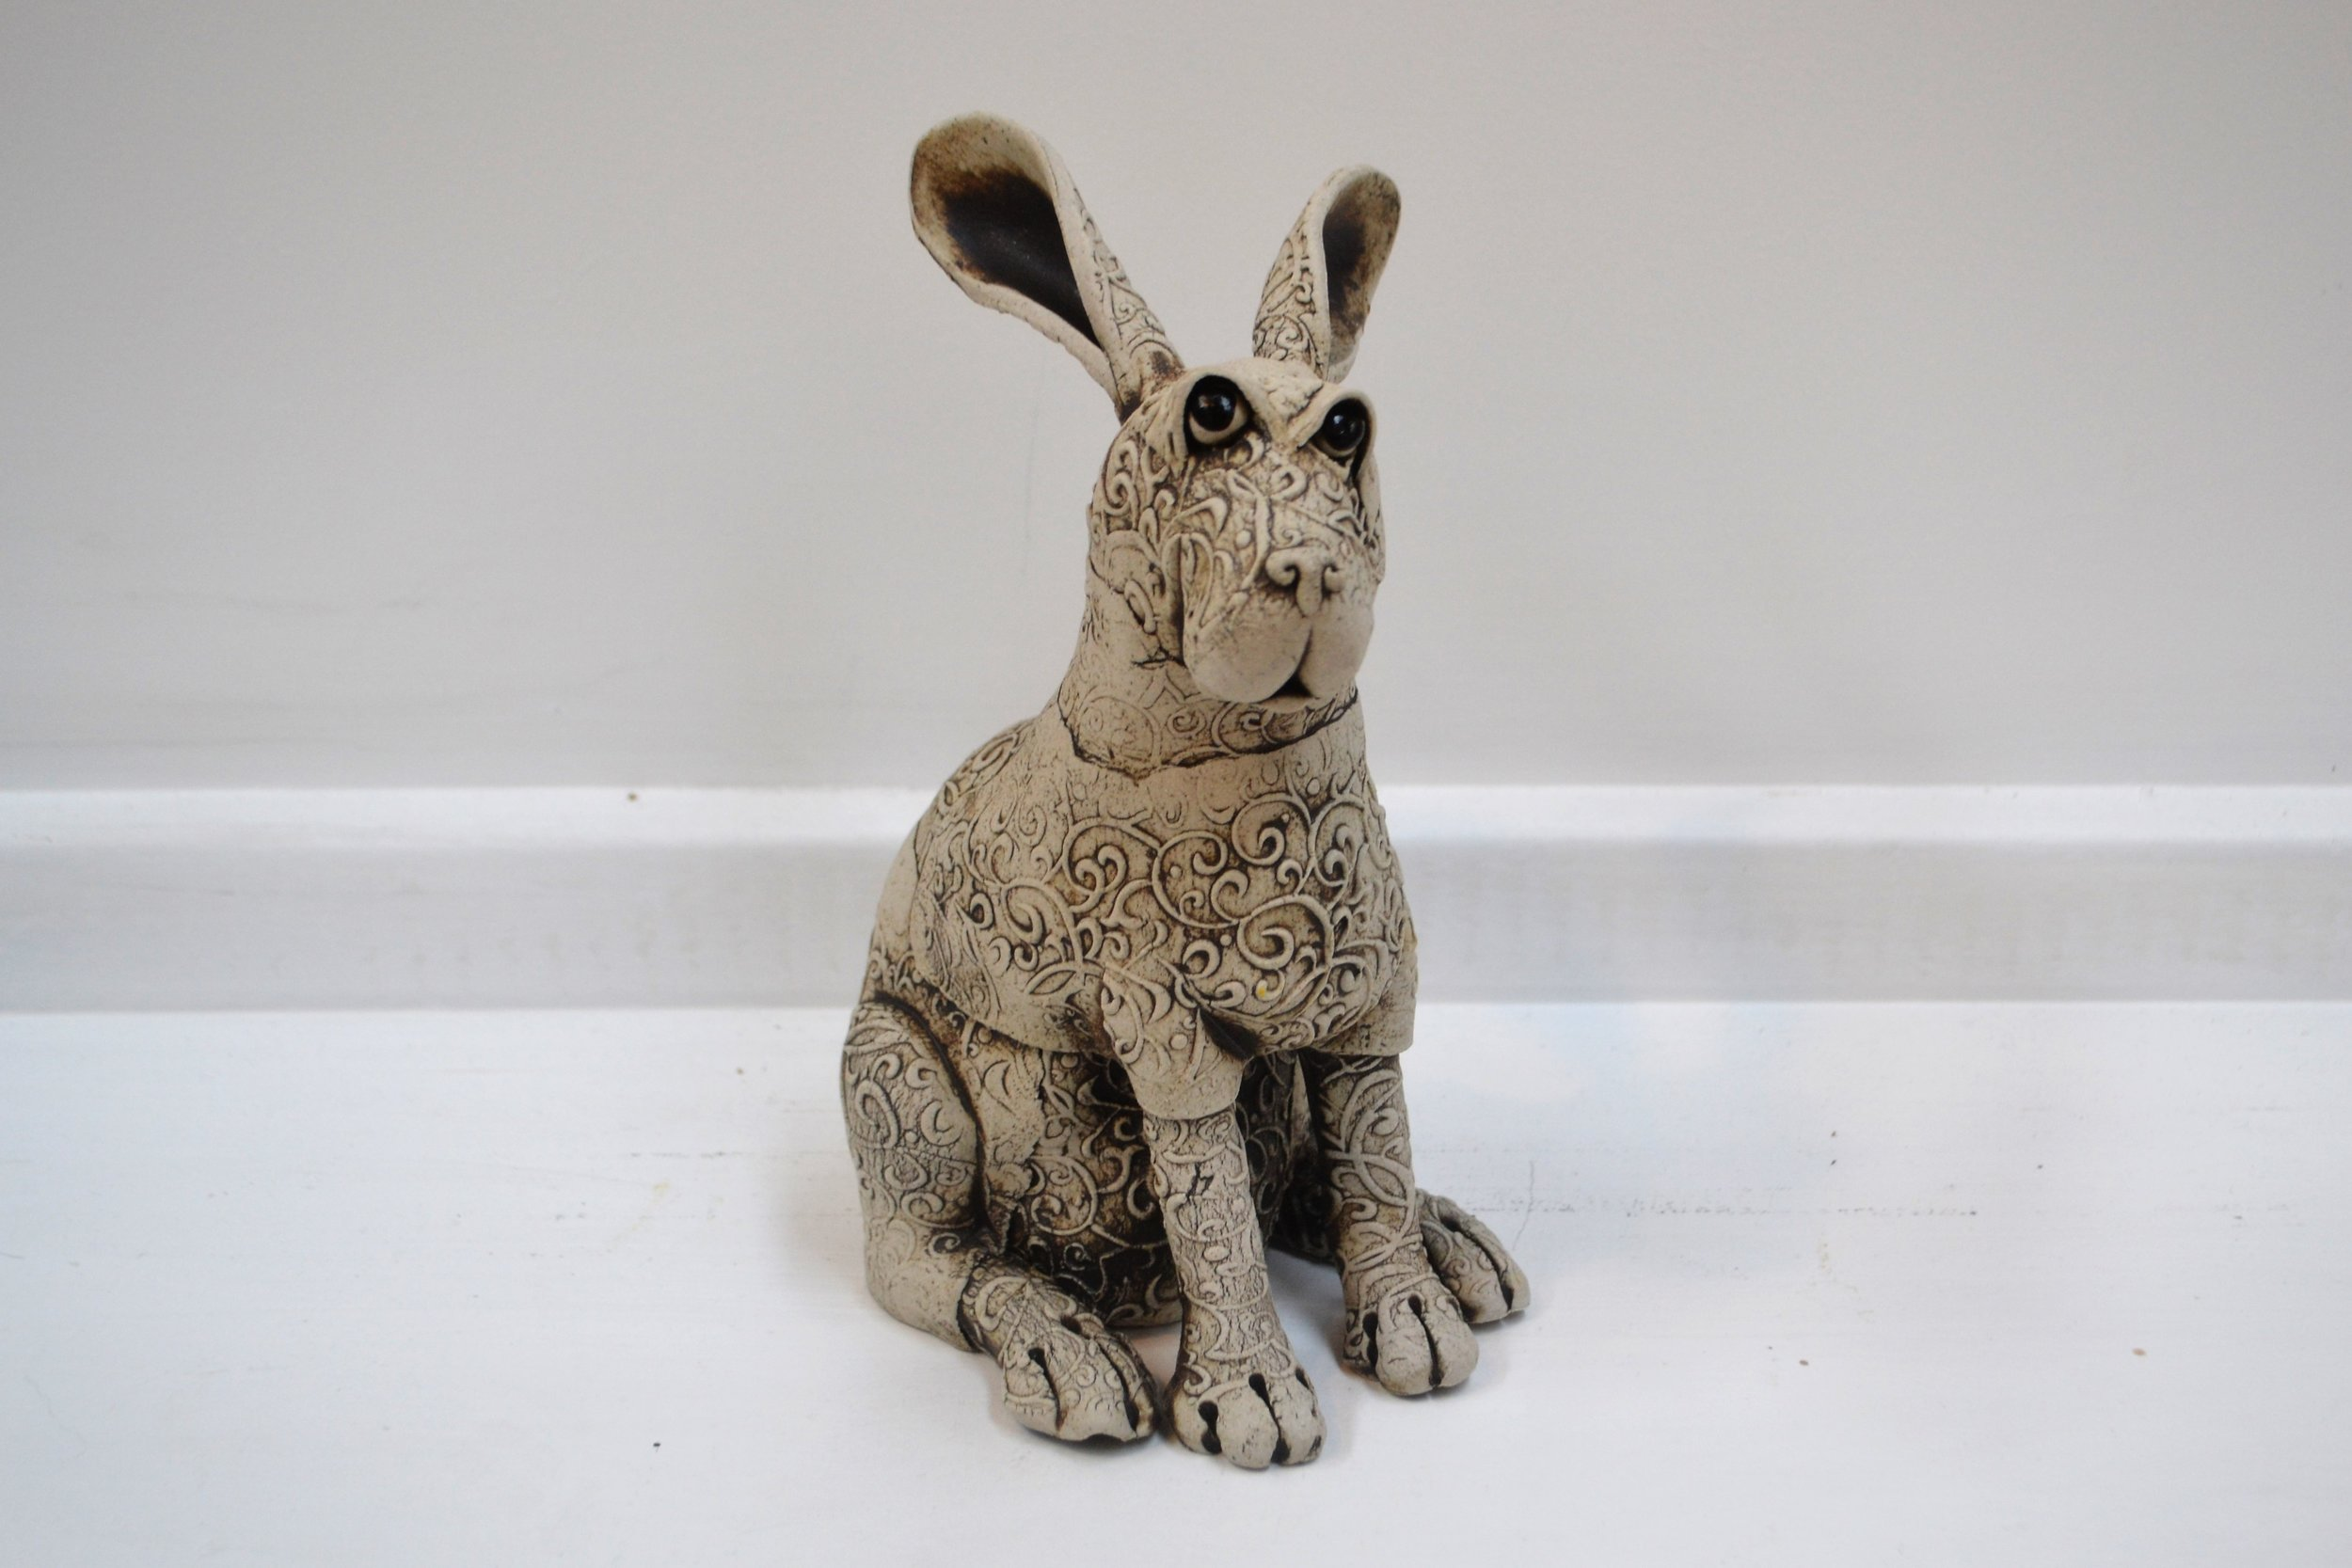 Small Pattern Rabbit  Fiona Tunnicliffe, hand formed ceramic sculpture, 230mm height  sold